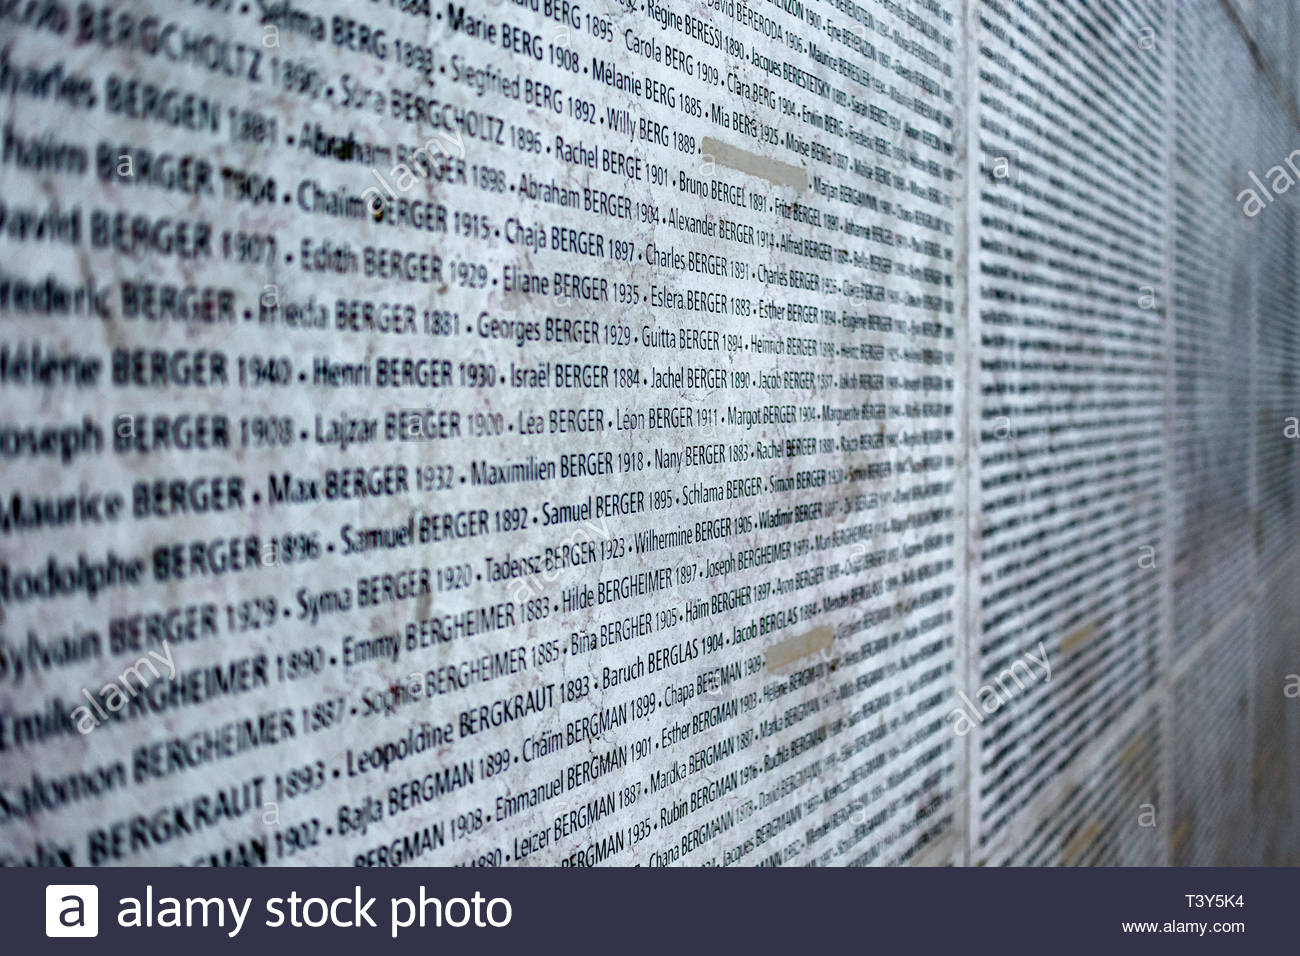 The Wall of Names, which includes 76000 names of Jews deported from France from 1942 to 1944, including 11400 children - Holocaust Memorial. August 29 - Stock Image